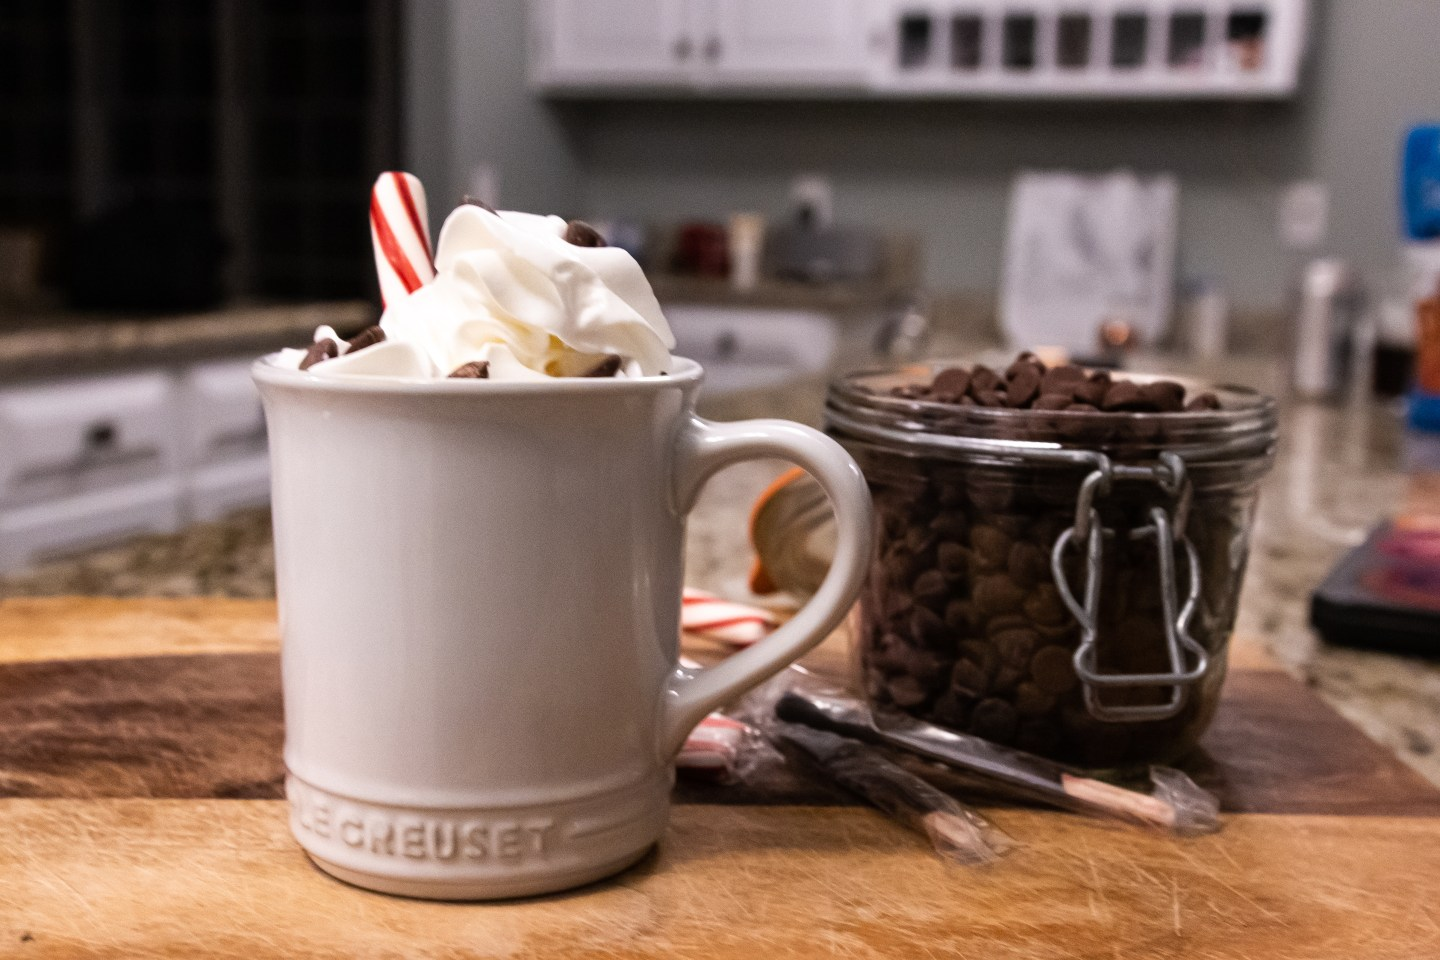 Jordan Taylor C - lifestyle blog,The Best Boozy Holiday Hot Chocolate, lifestyle, holiday, drinks, holiday drinks, peppermint hot chocolate, hot chocolate, christmas, new years, holiday drink, holiday hot chocolate, alcoholic drinks, alcohol, holiday booze